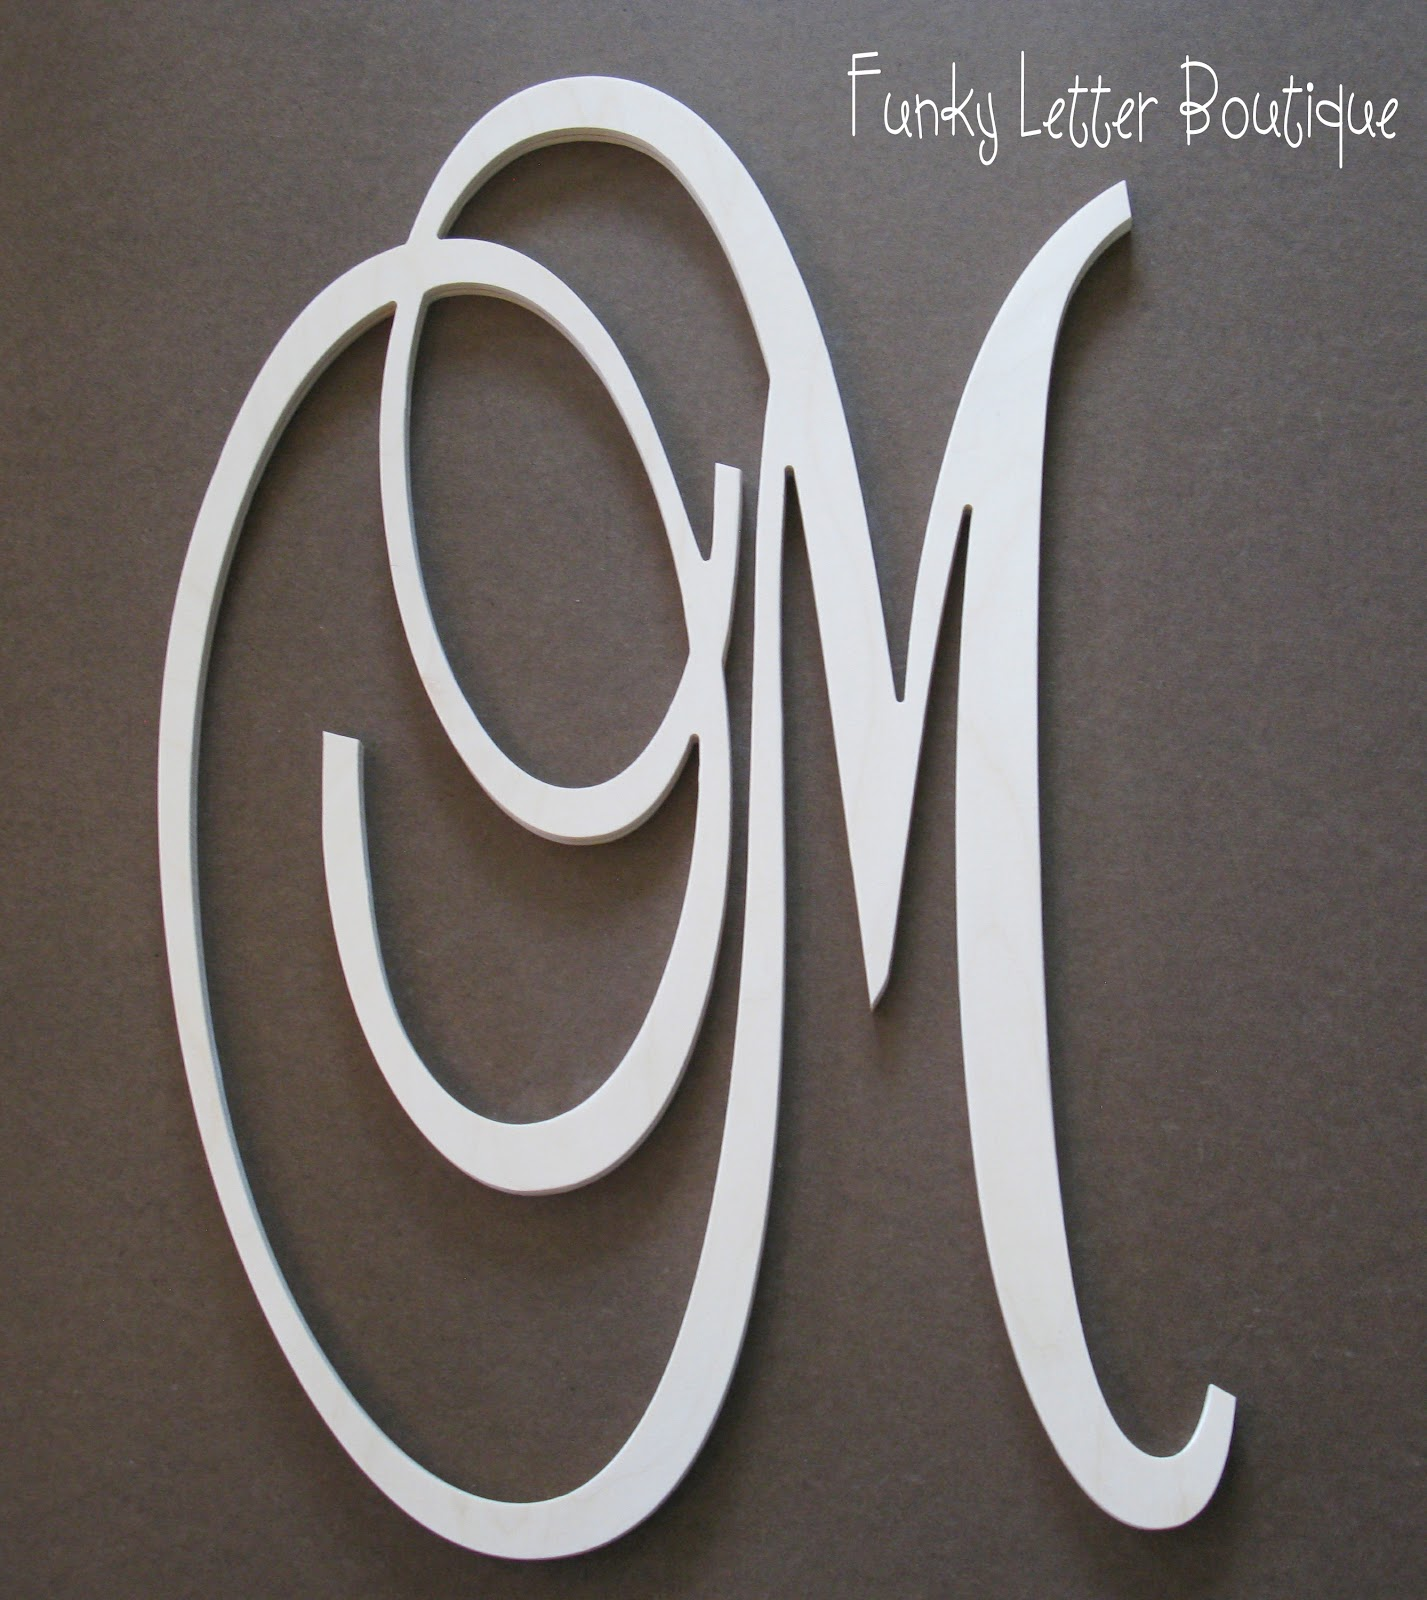 The funky letter boutique diy wooden letters and home for Monogram homes